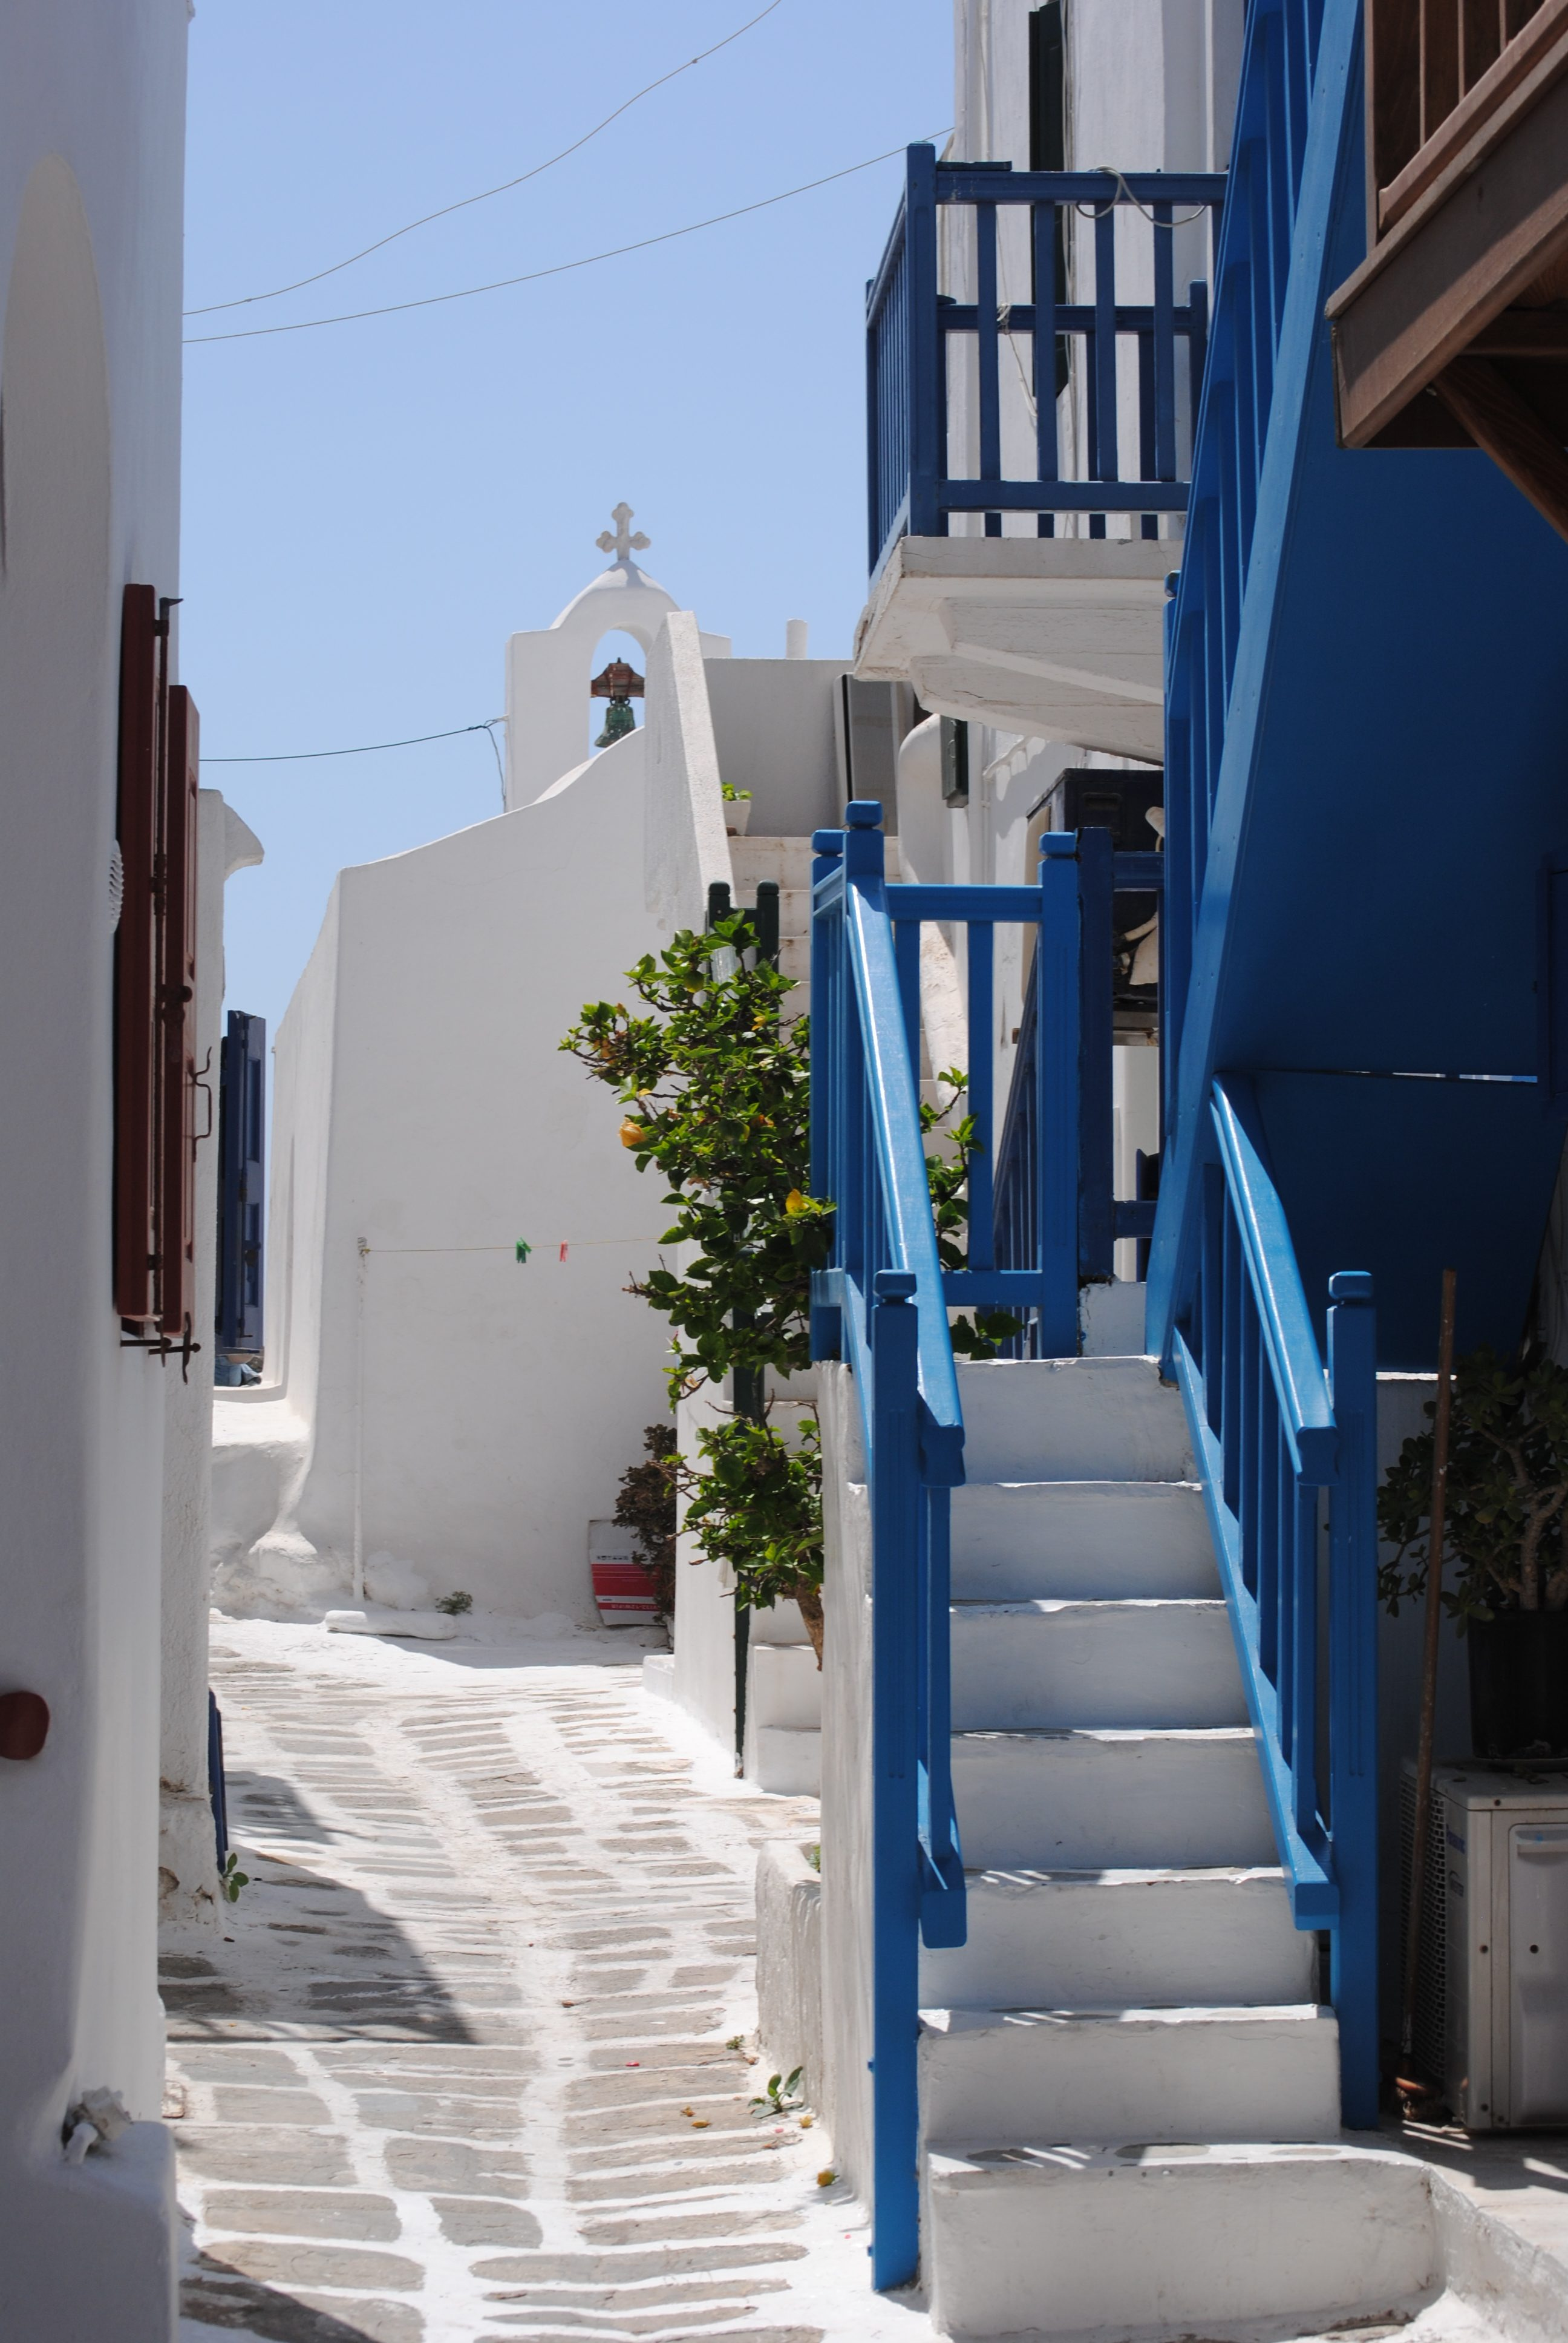 Explore Little Venice in Mykonos, Greece